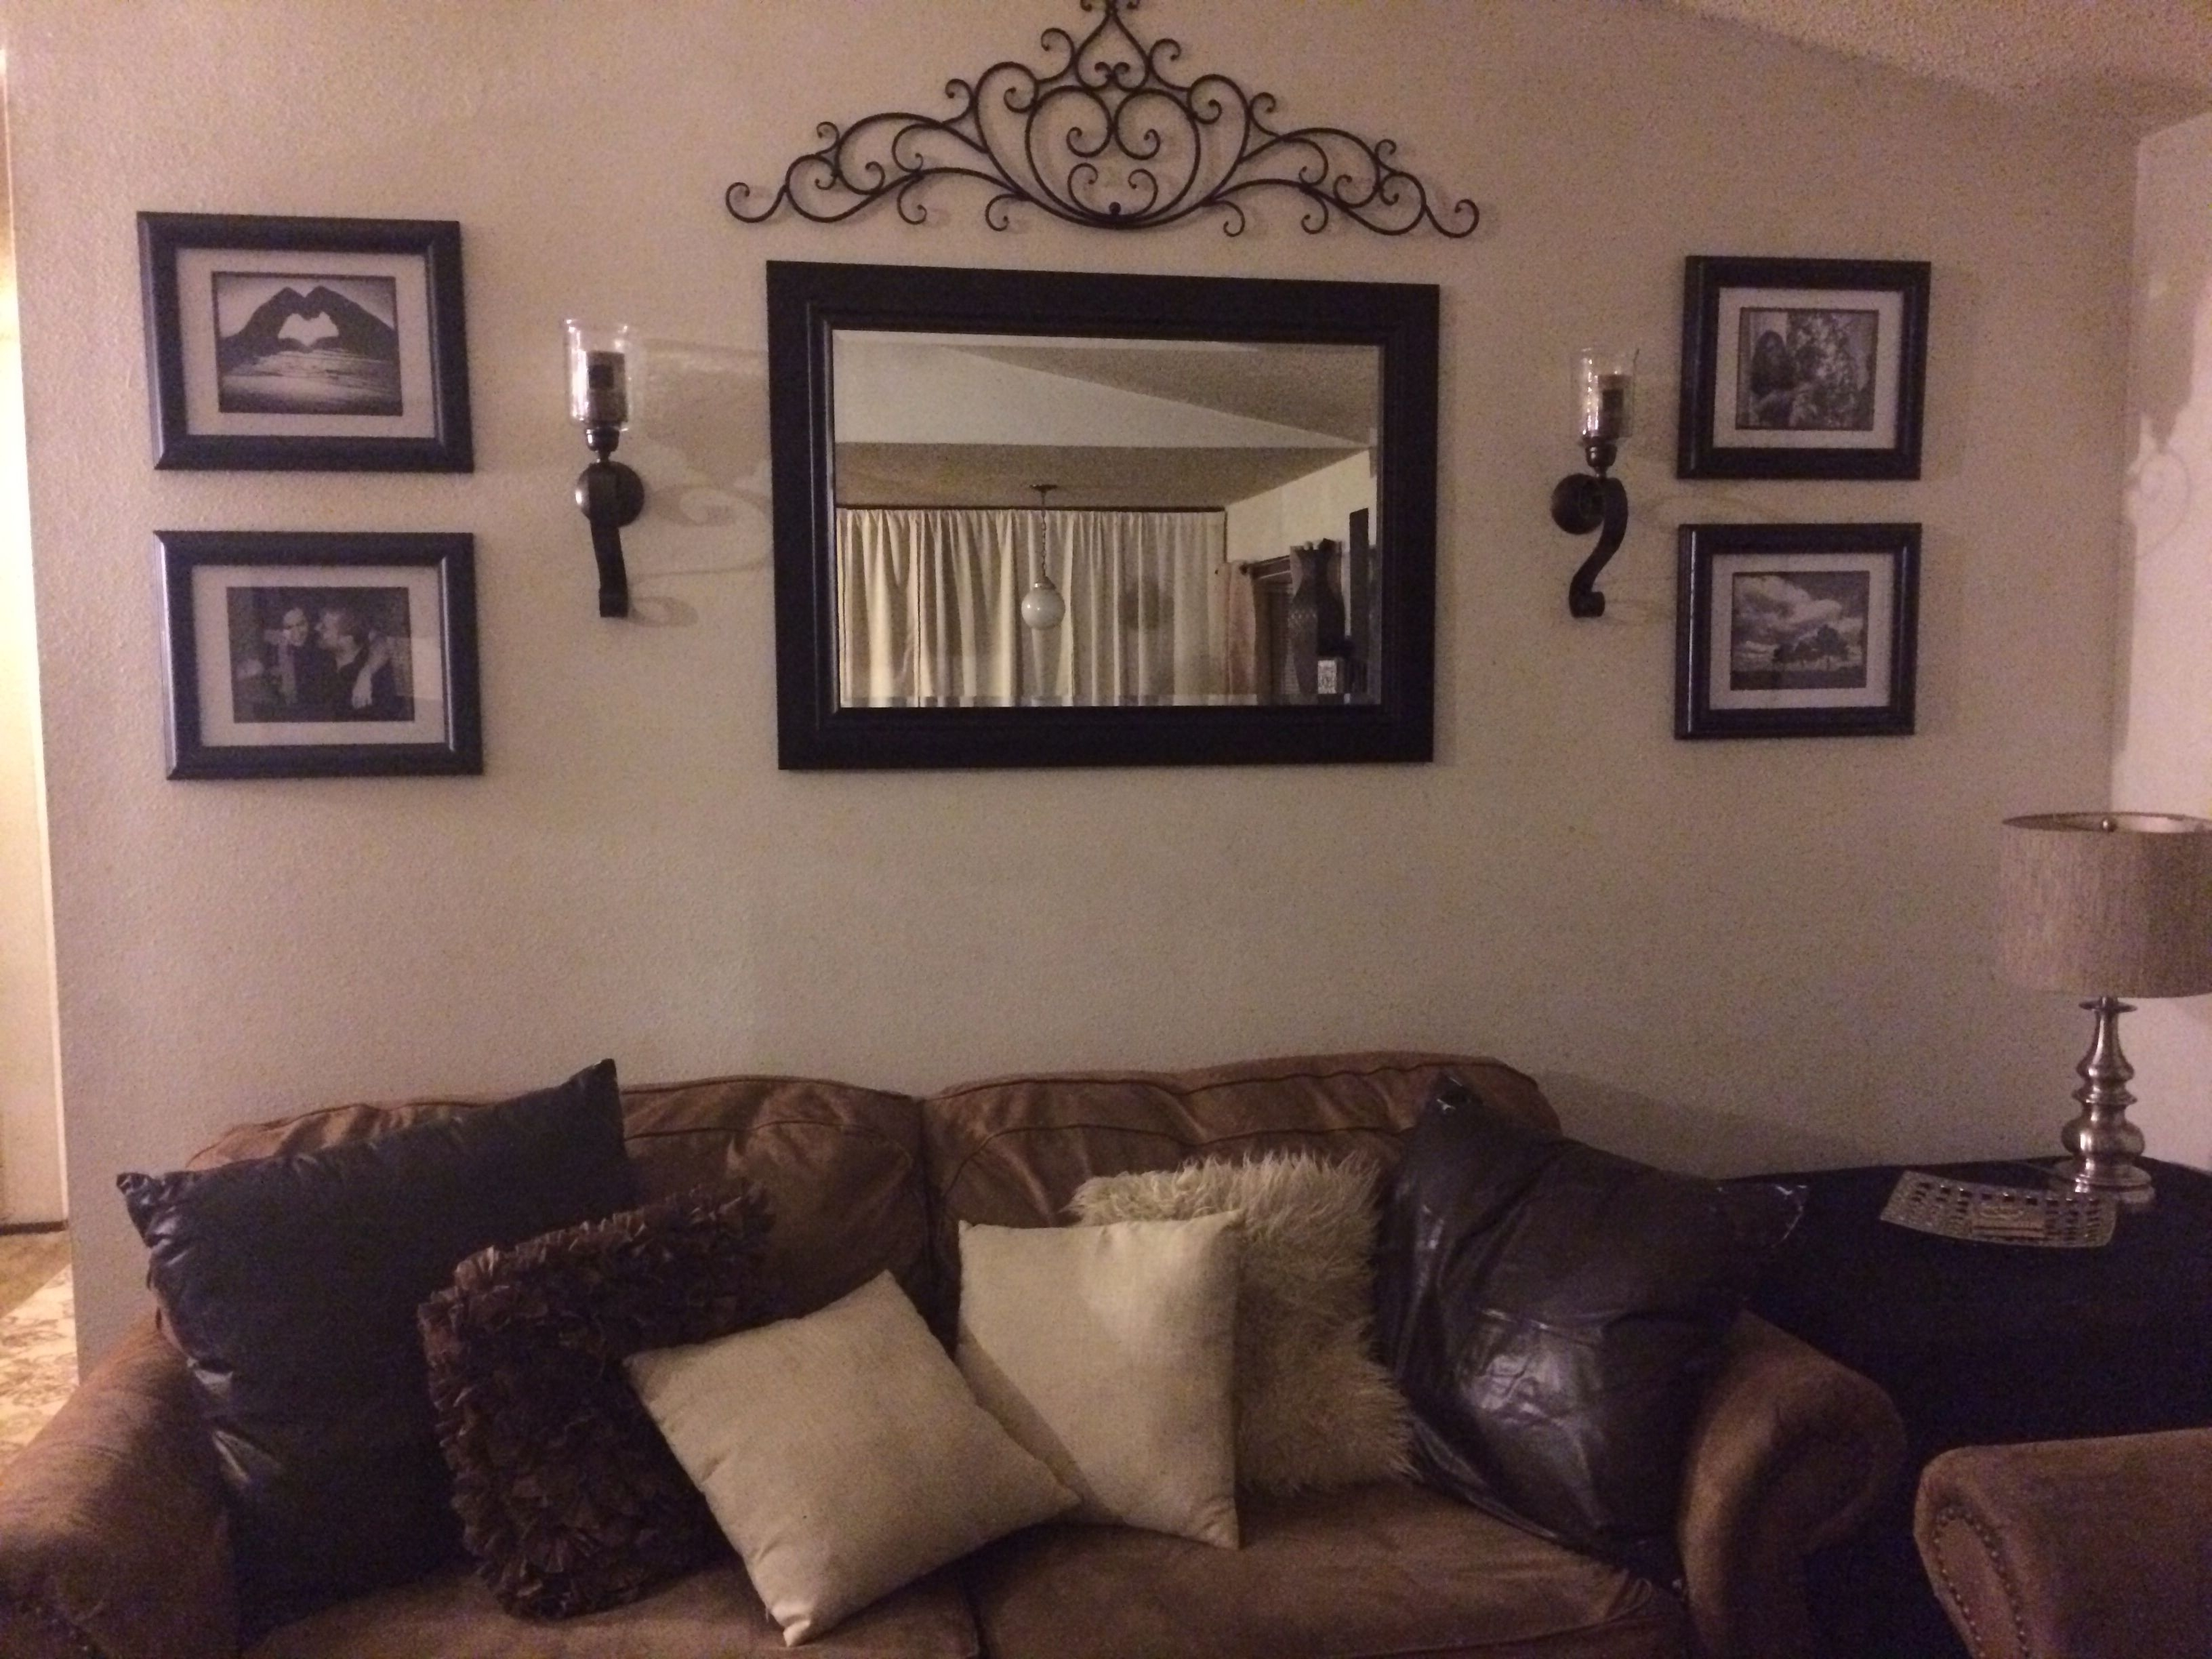 Trendy Wall Accents Behind Tv Intended For Behind Couch Wall In Living Room Mirror, Frame, Sconces, And Metal (View 12 of 15)